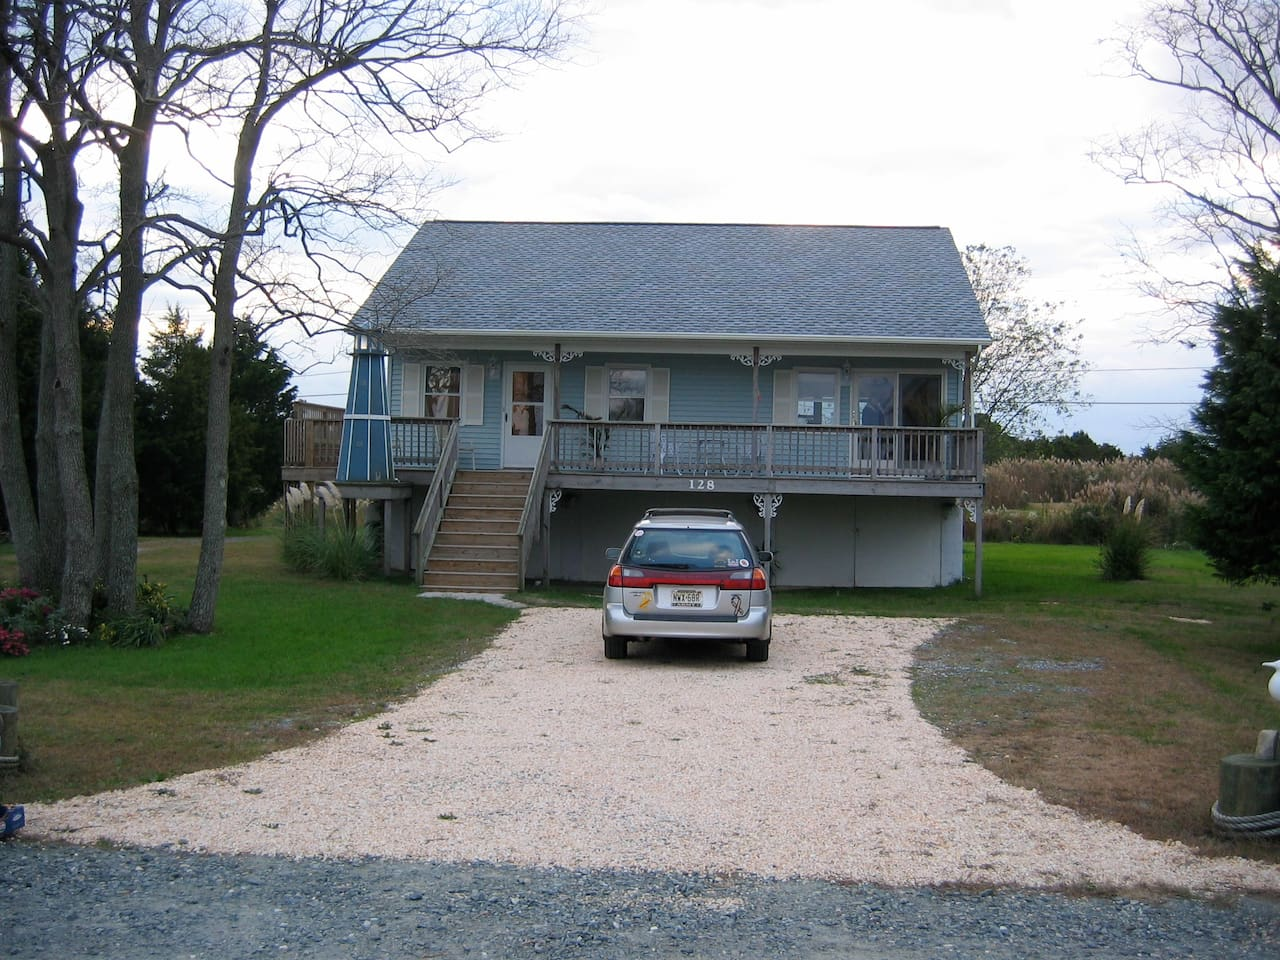 Peace, serenity, privacy, tranquility....all found at Beach Plum B&B